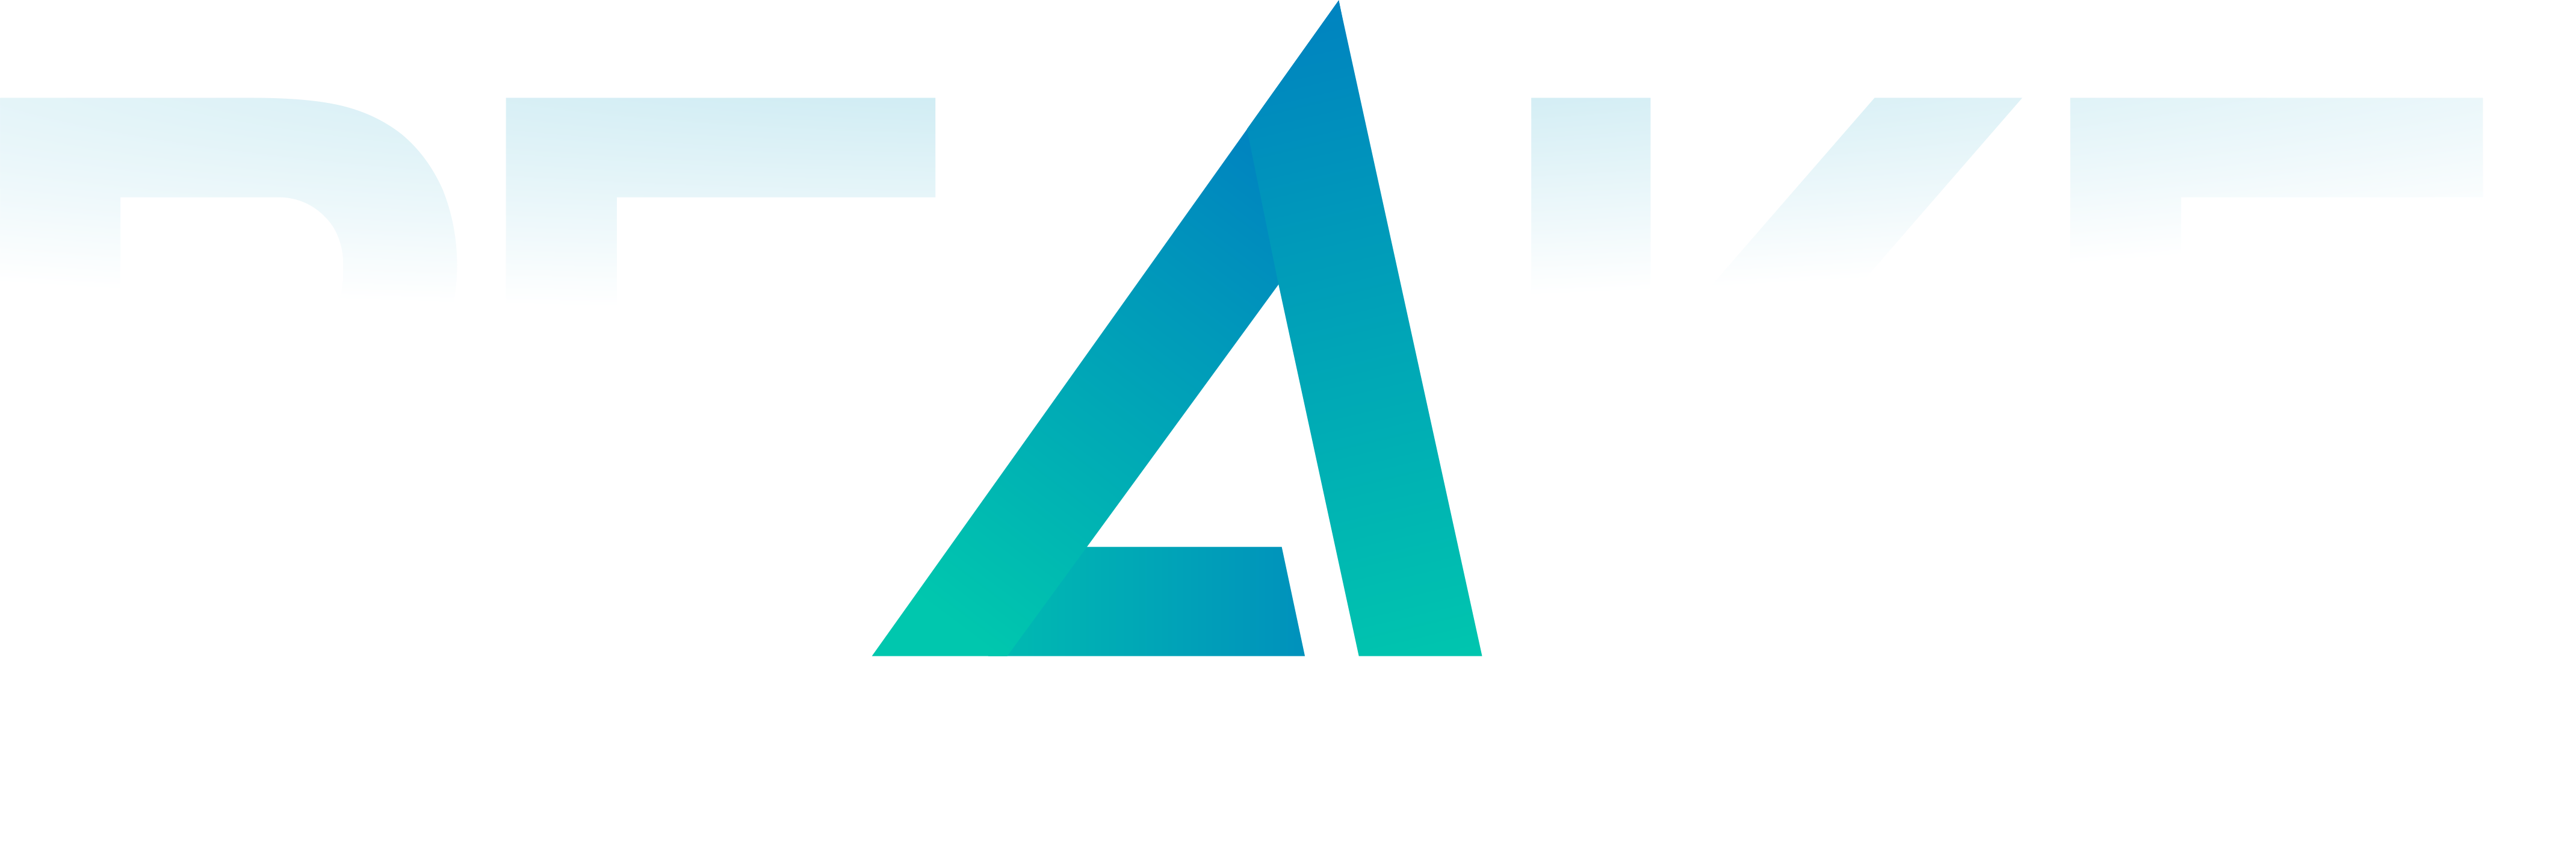 PEAKE Technology Partners